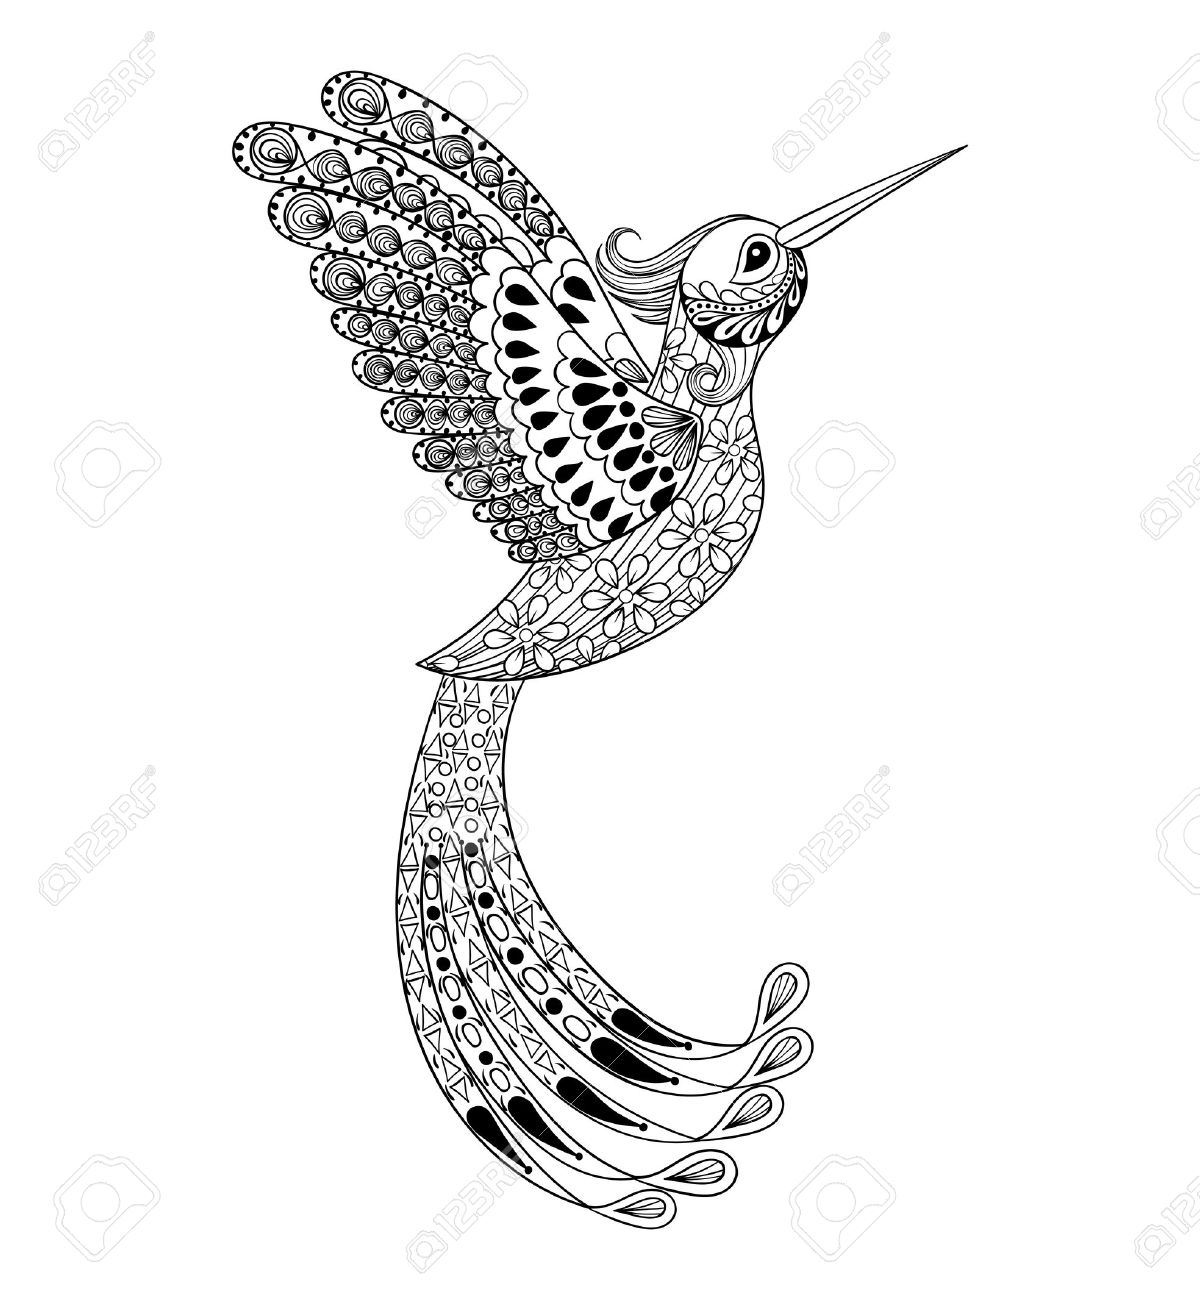 Bird in flight Stencils Free Printable - Bing images | Bird ... | 1300x1200